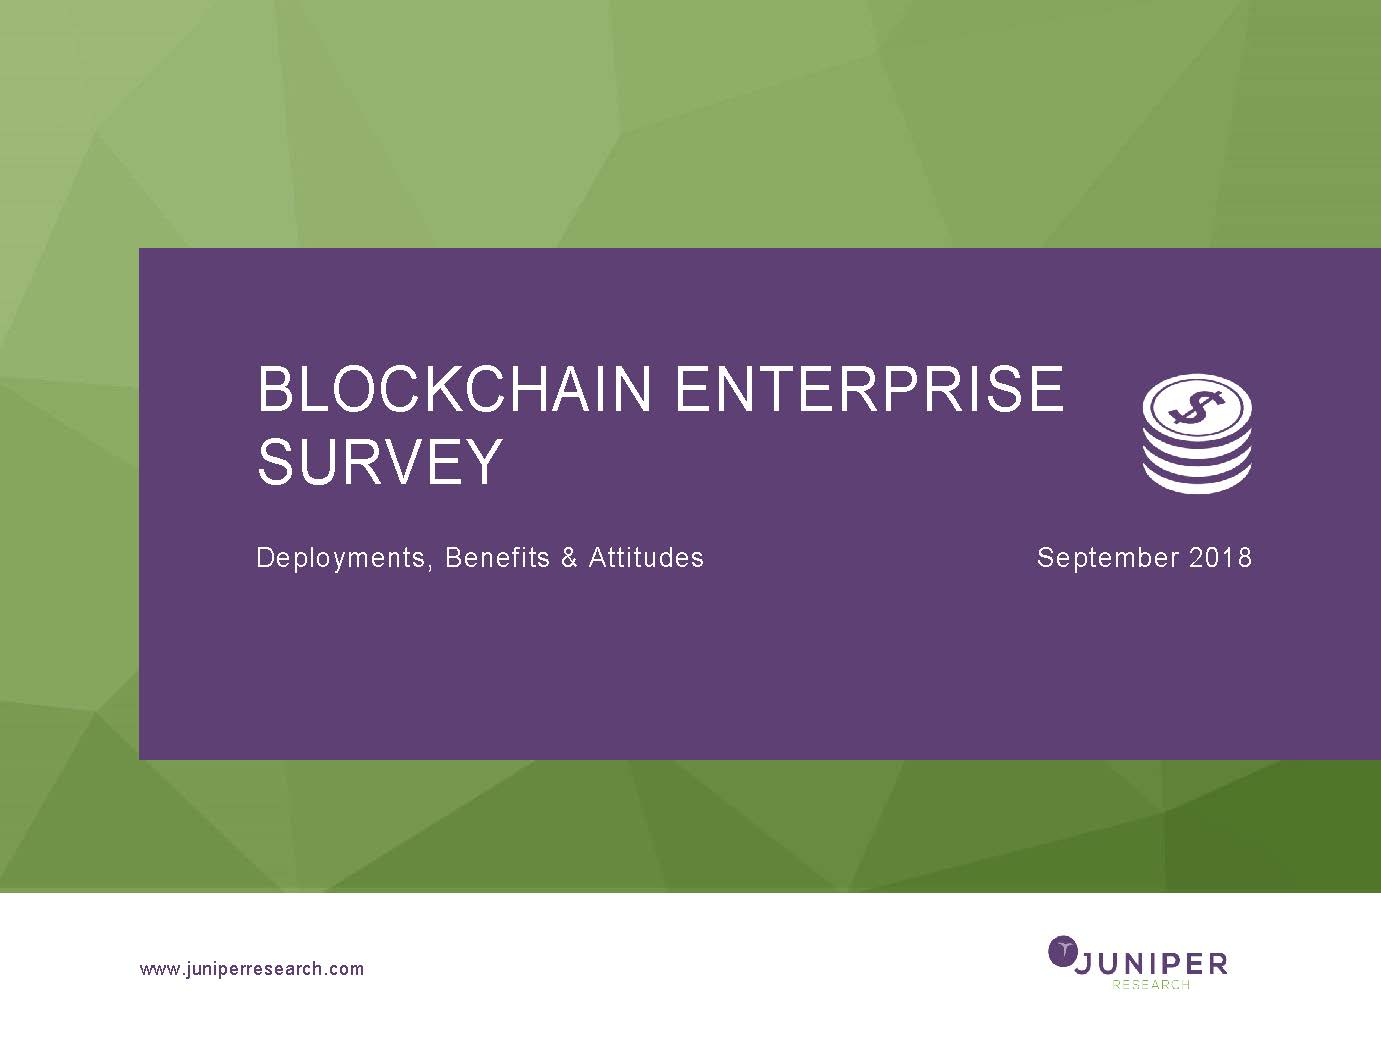 Blockchain Enterprise Survey